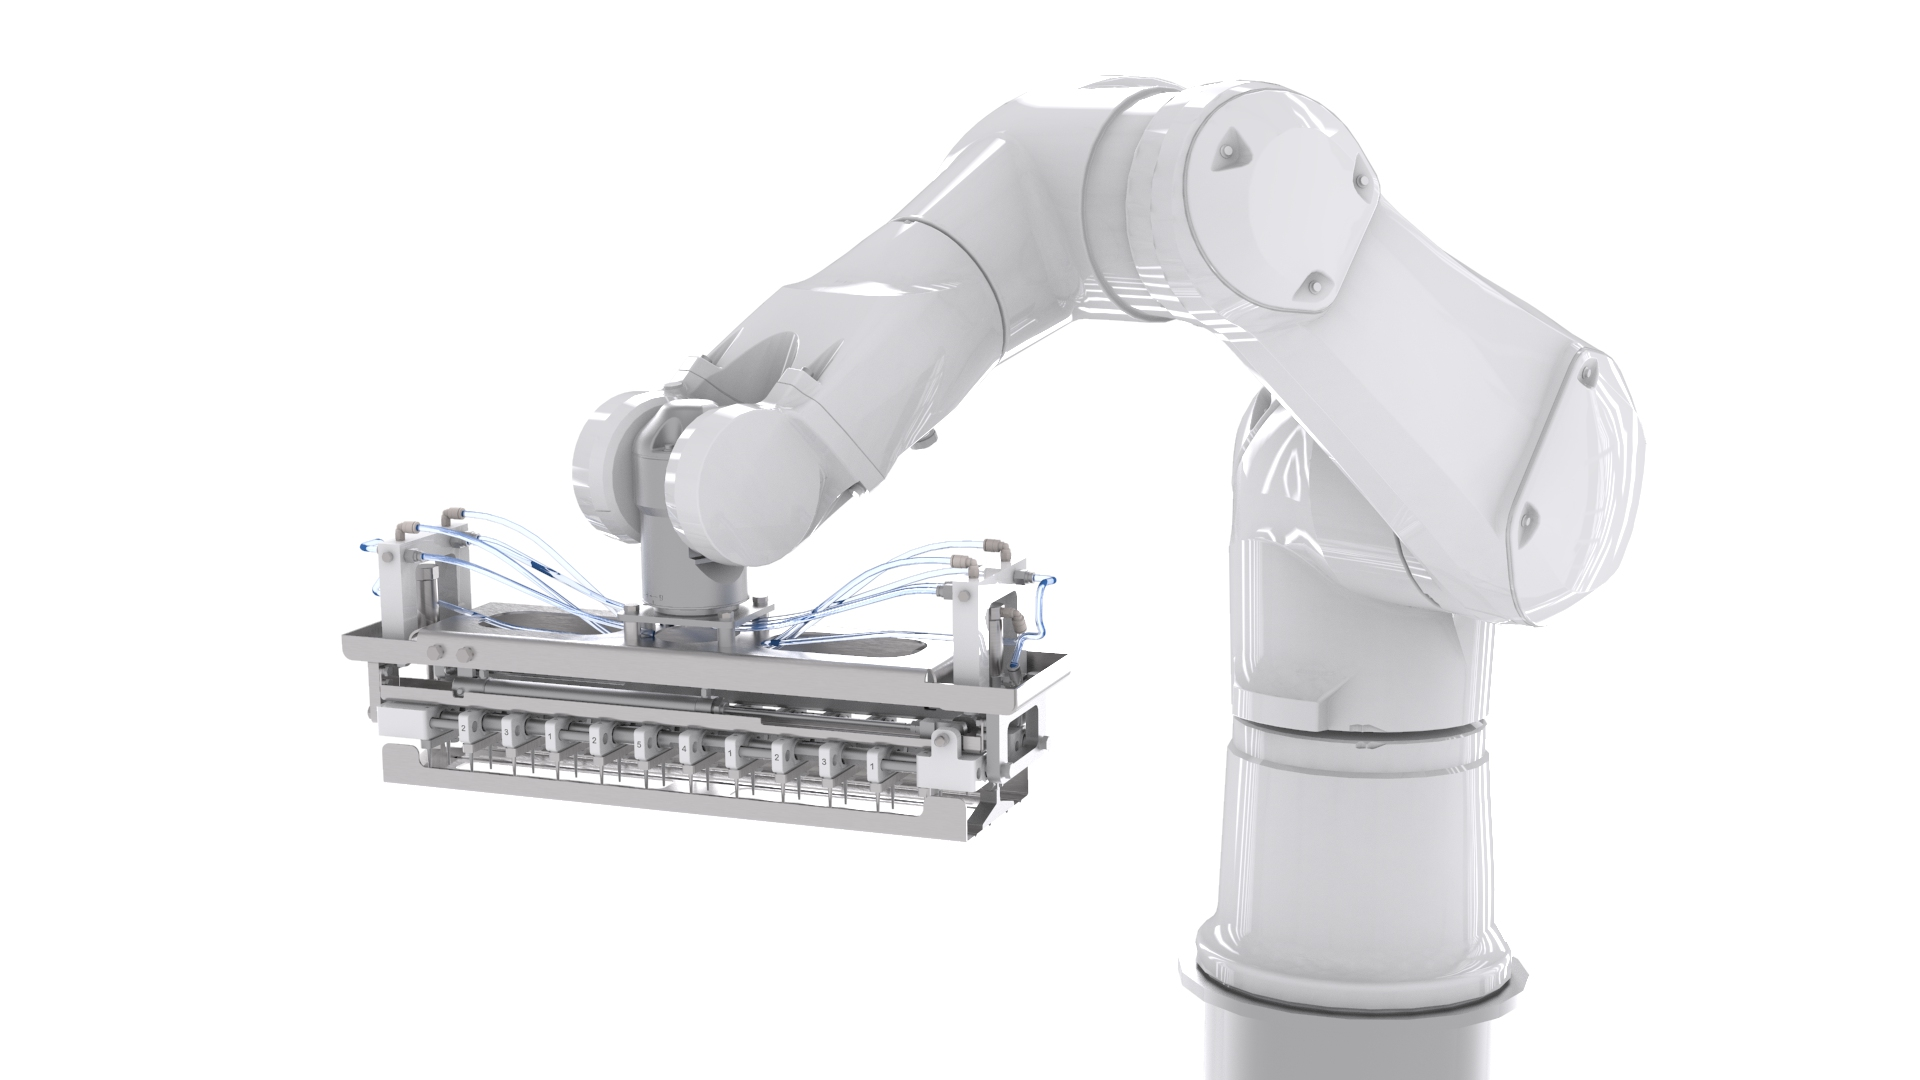 marchant schmidt offers staubli robotic systems for handling food